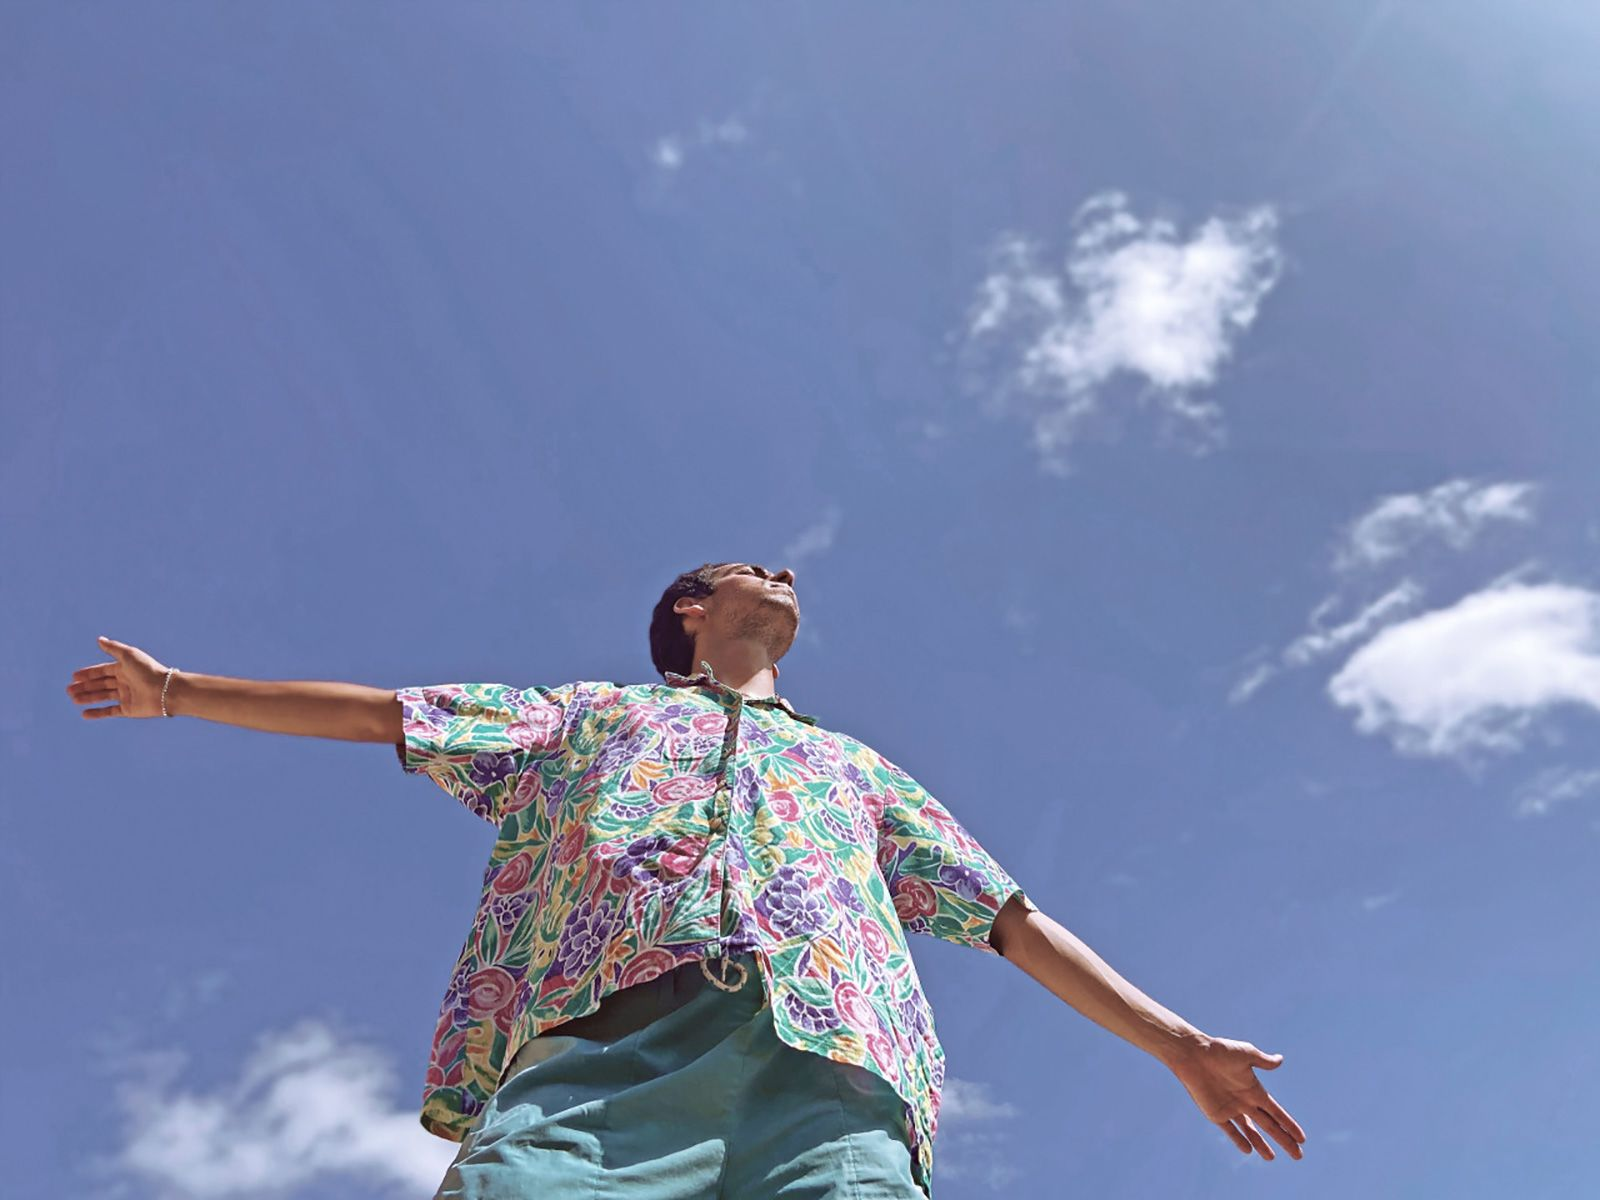 A photograph of a man raising his arms to a blue sky.